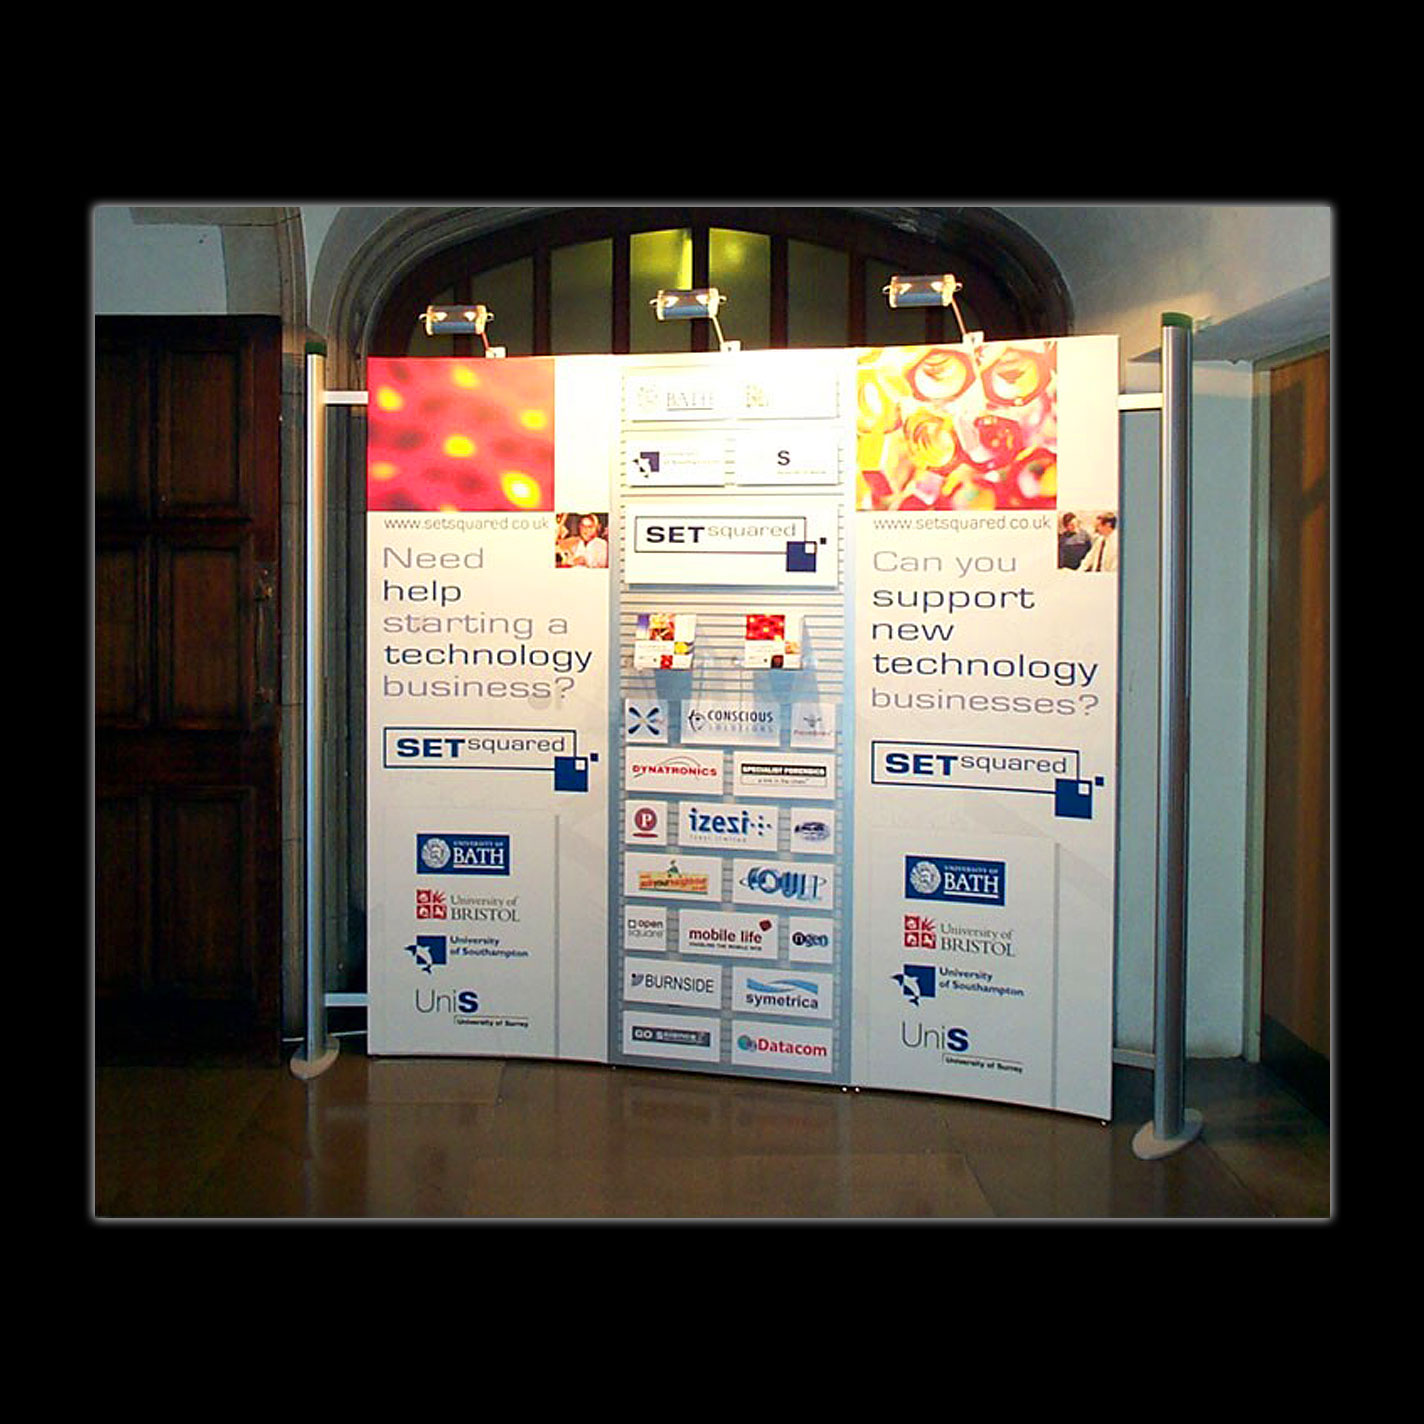 Display - Portable Display for SETsquared, Bristol - Aluminium Post & Rail System - Design & Production.